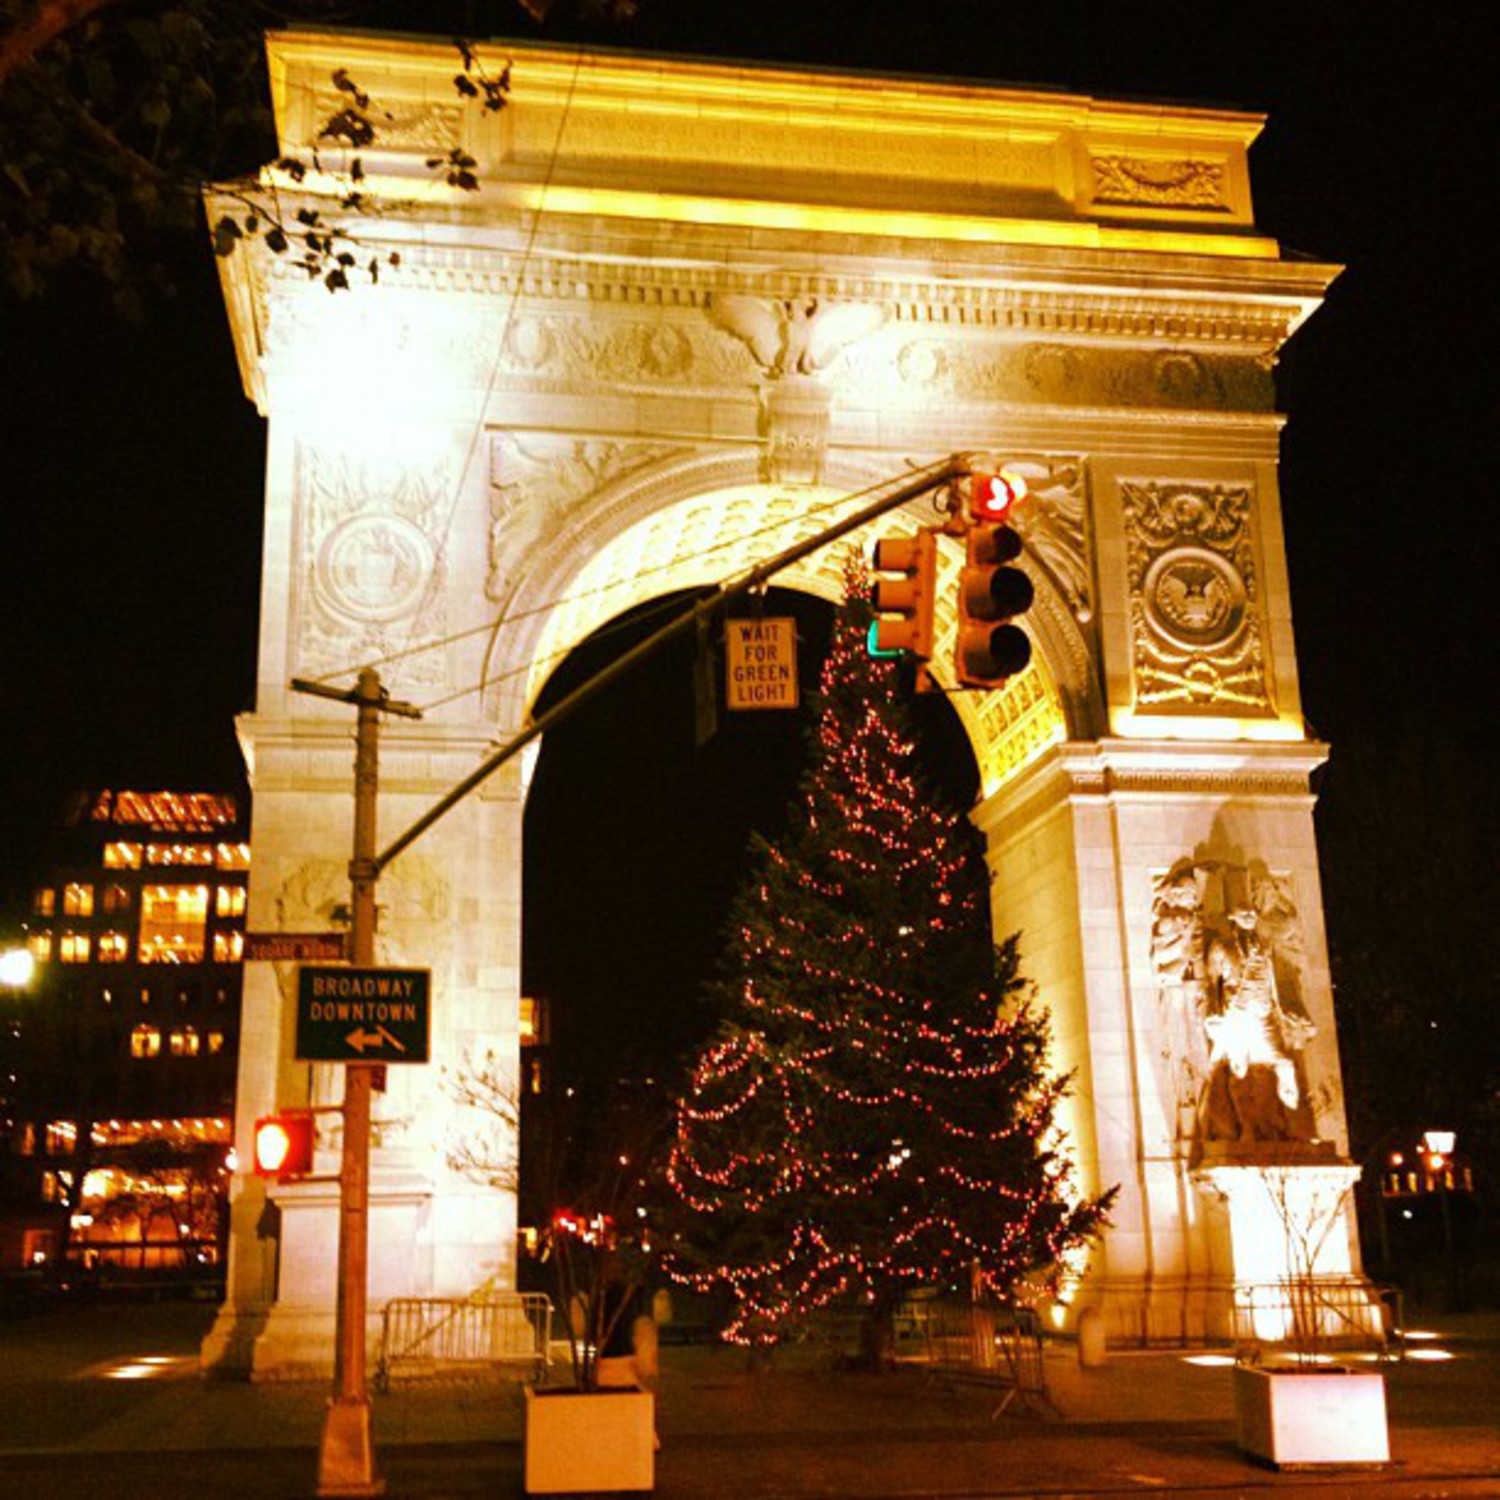 The 2011 Washington Square Park Christmas Tree